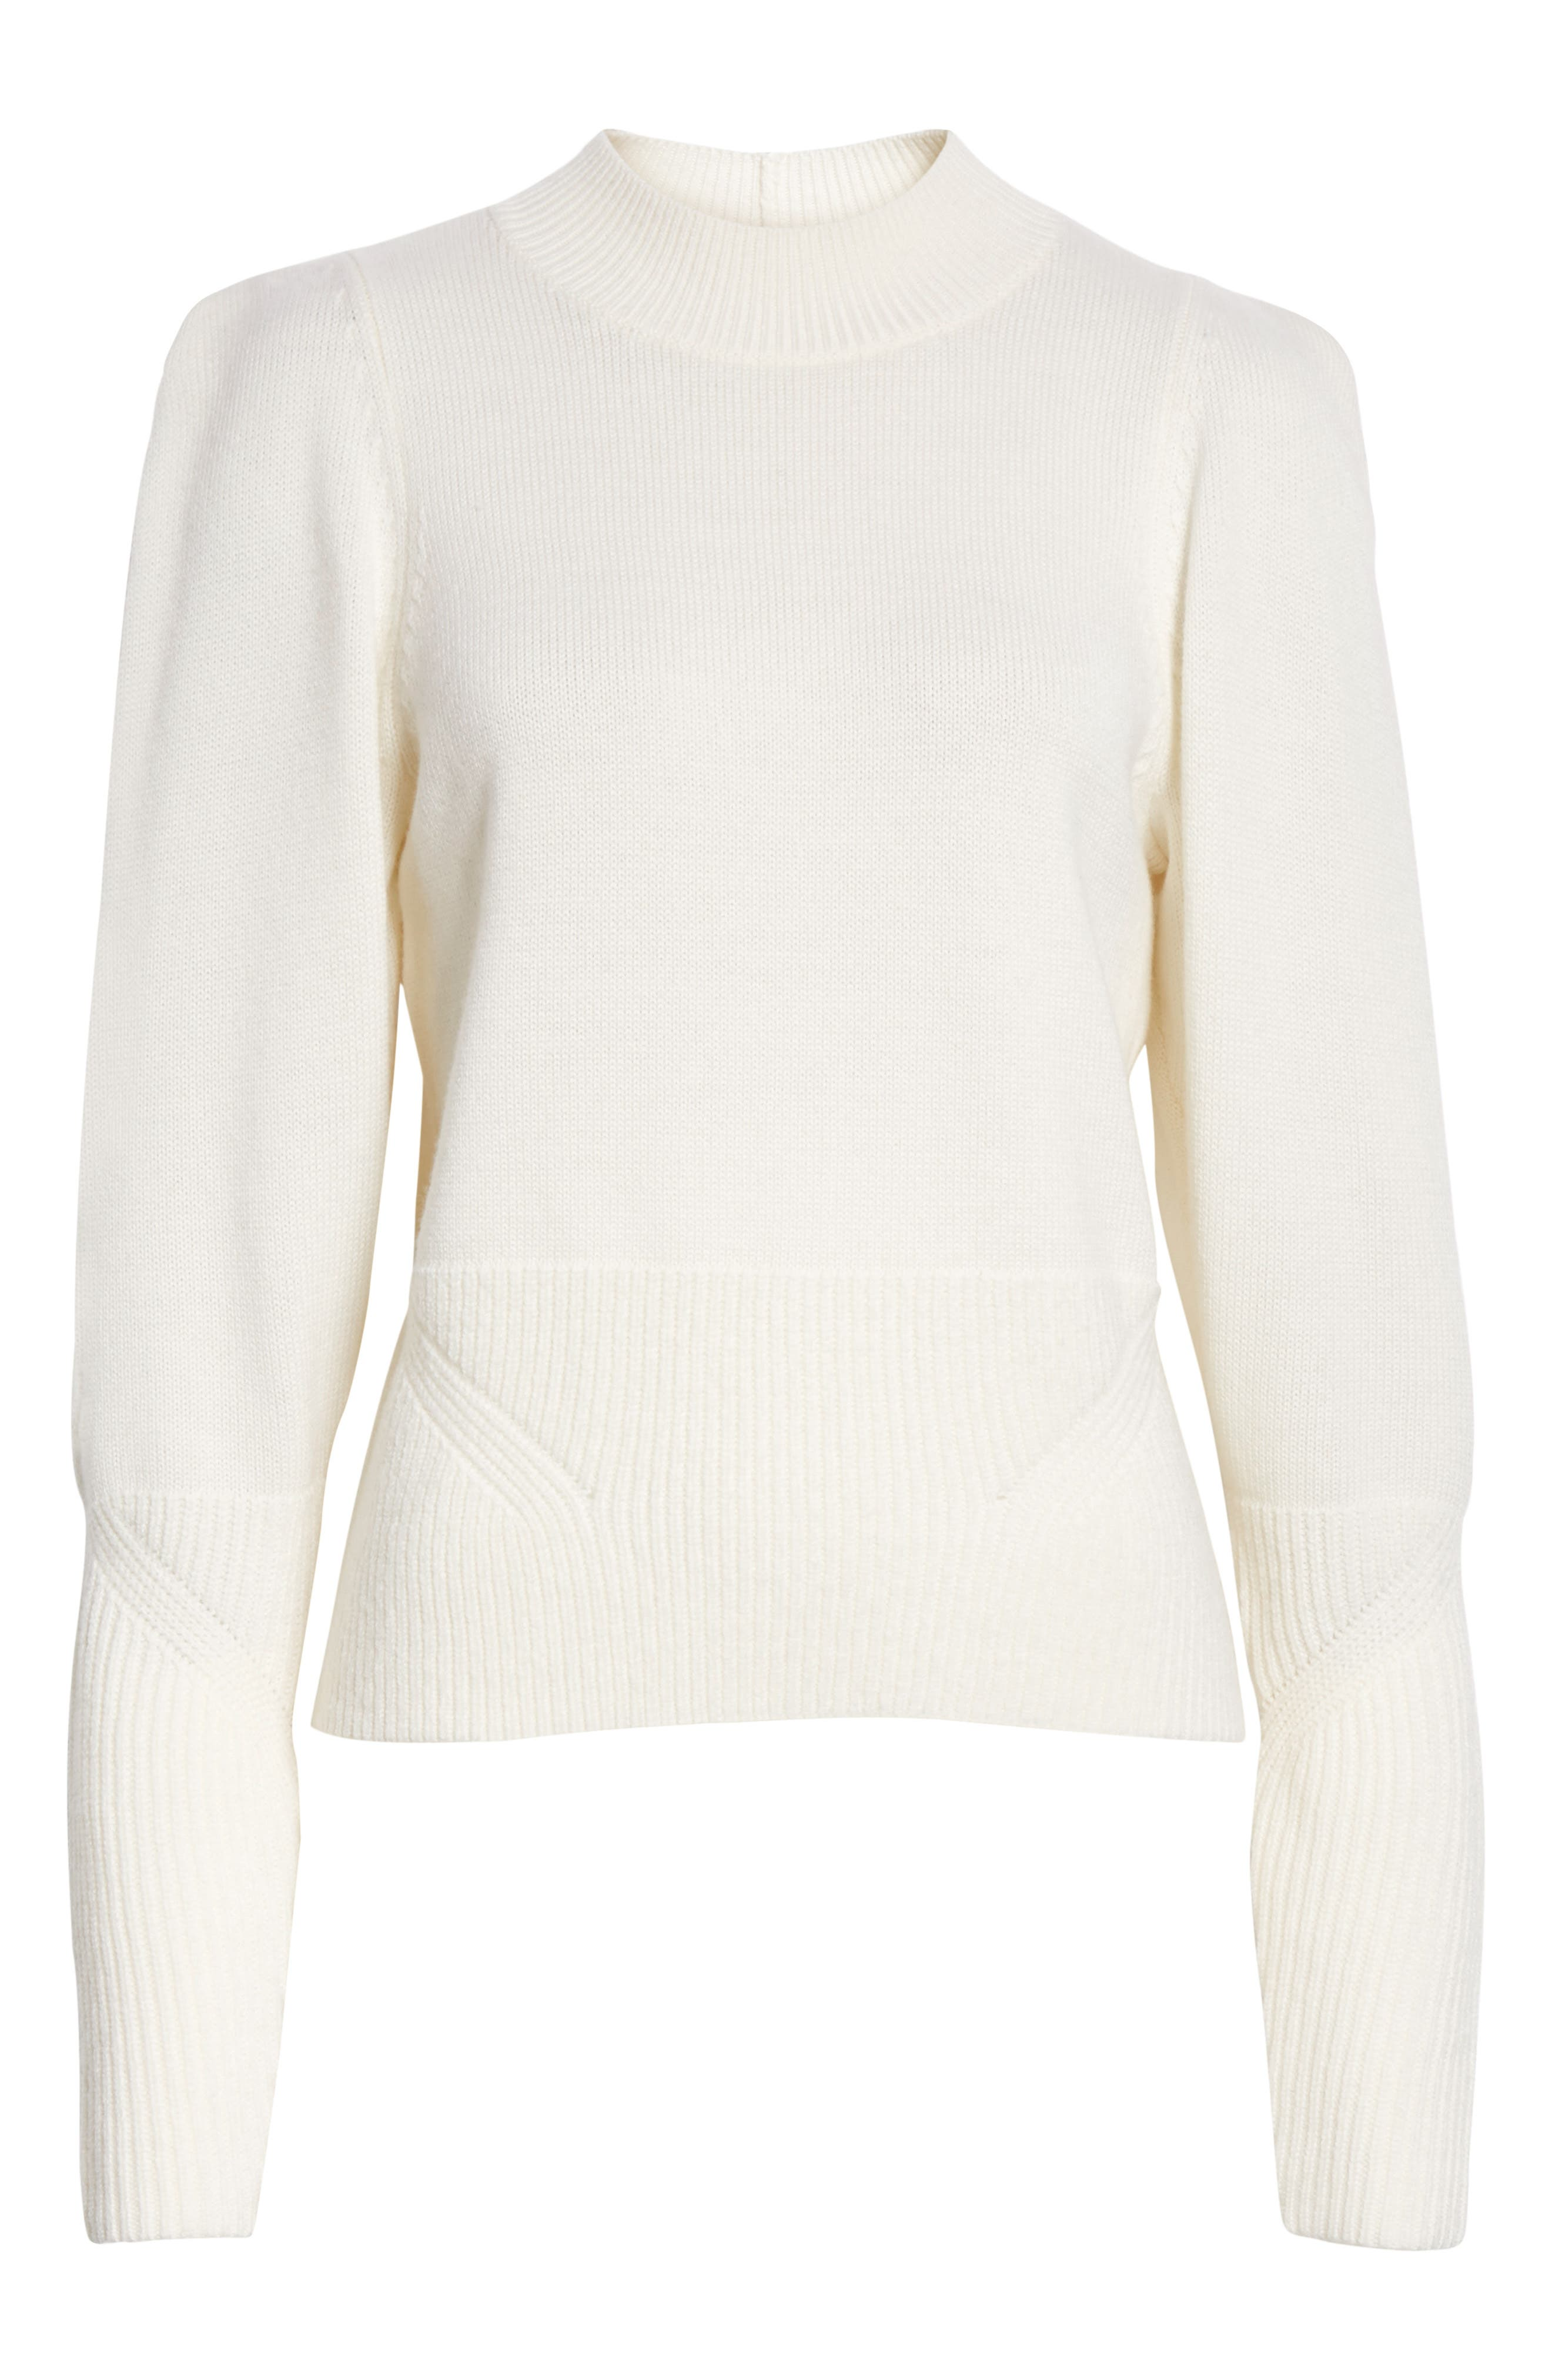 JOIE, Marquetta Sweater, Alternate thumbnail 6, color, 100